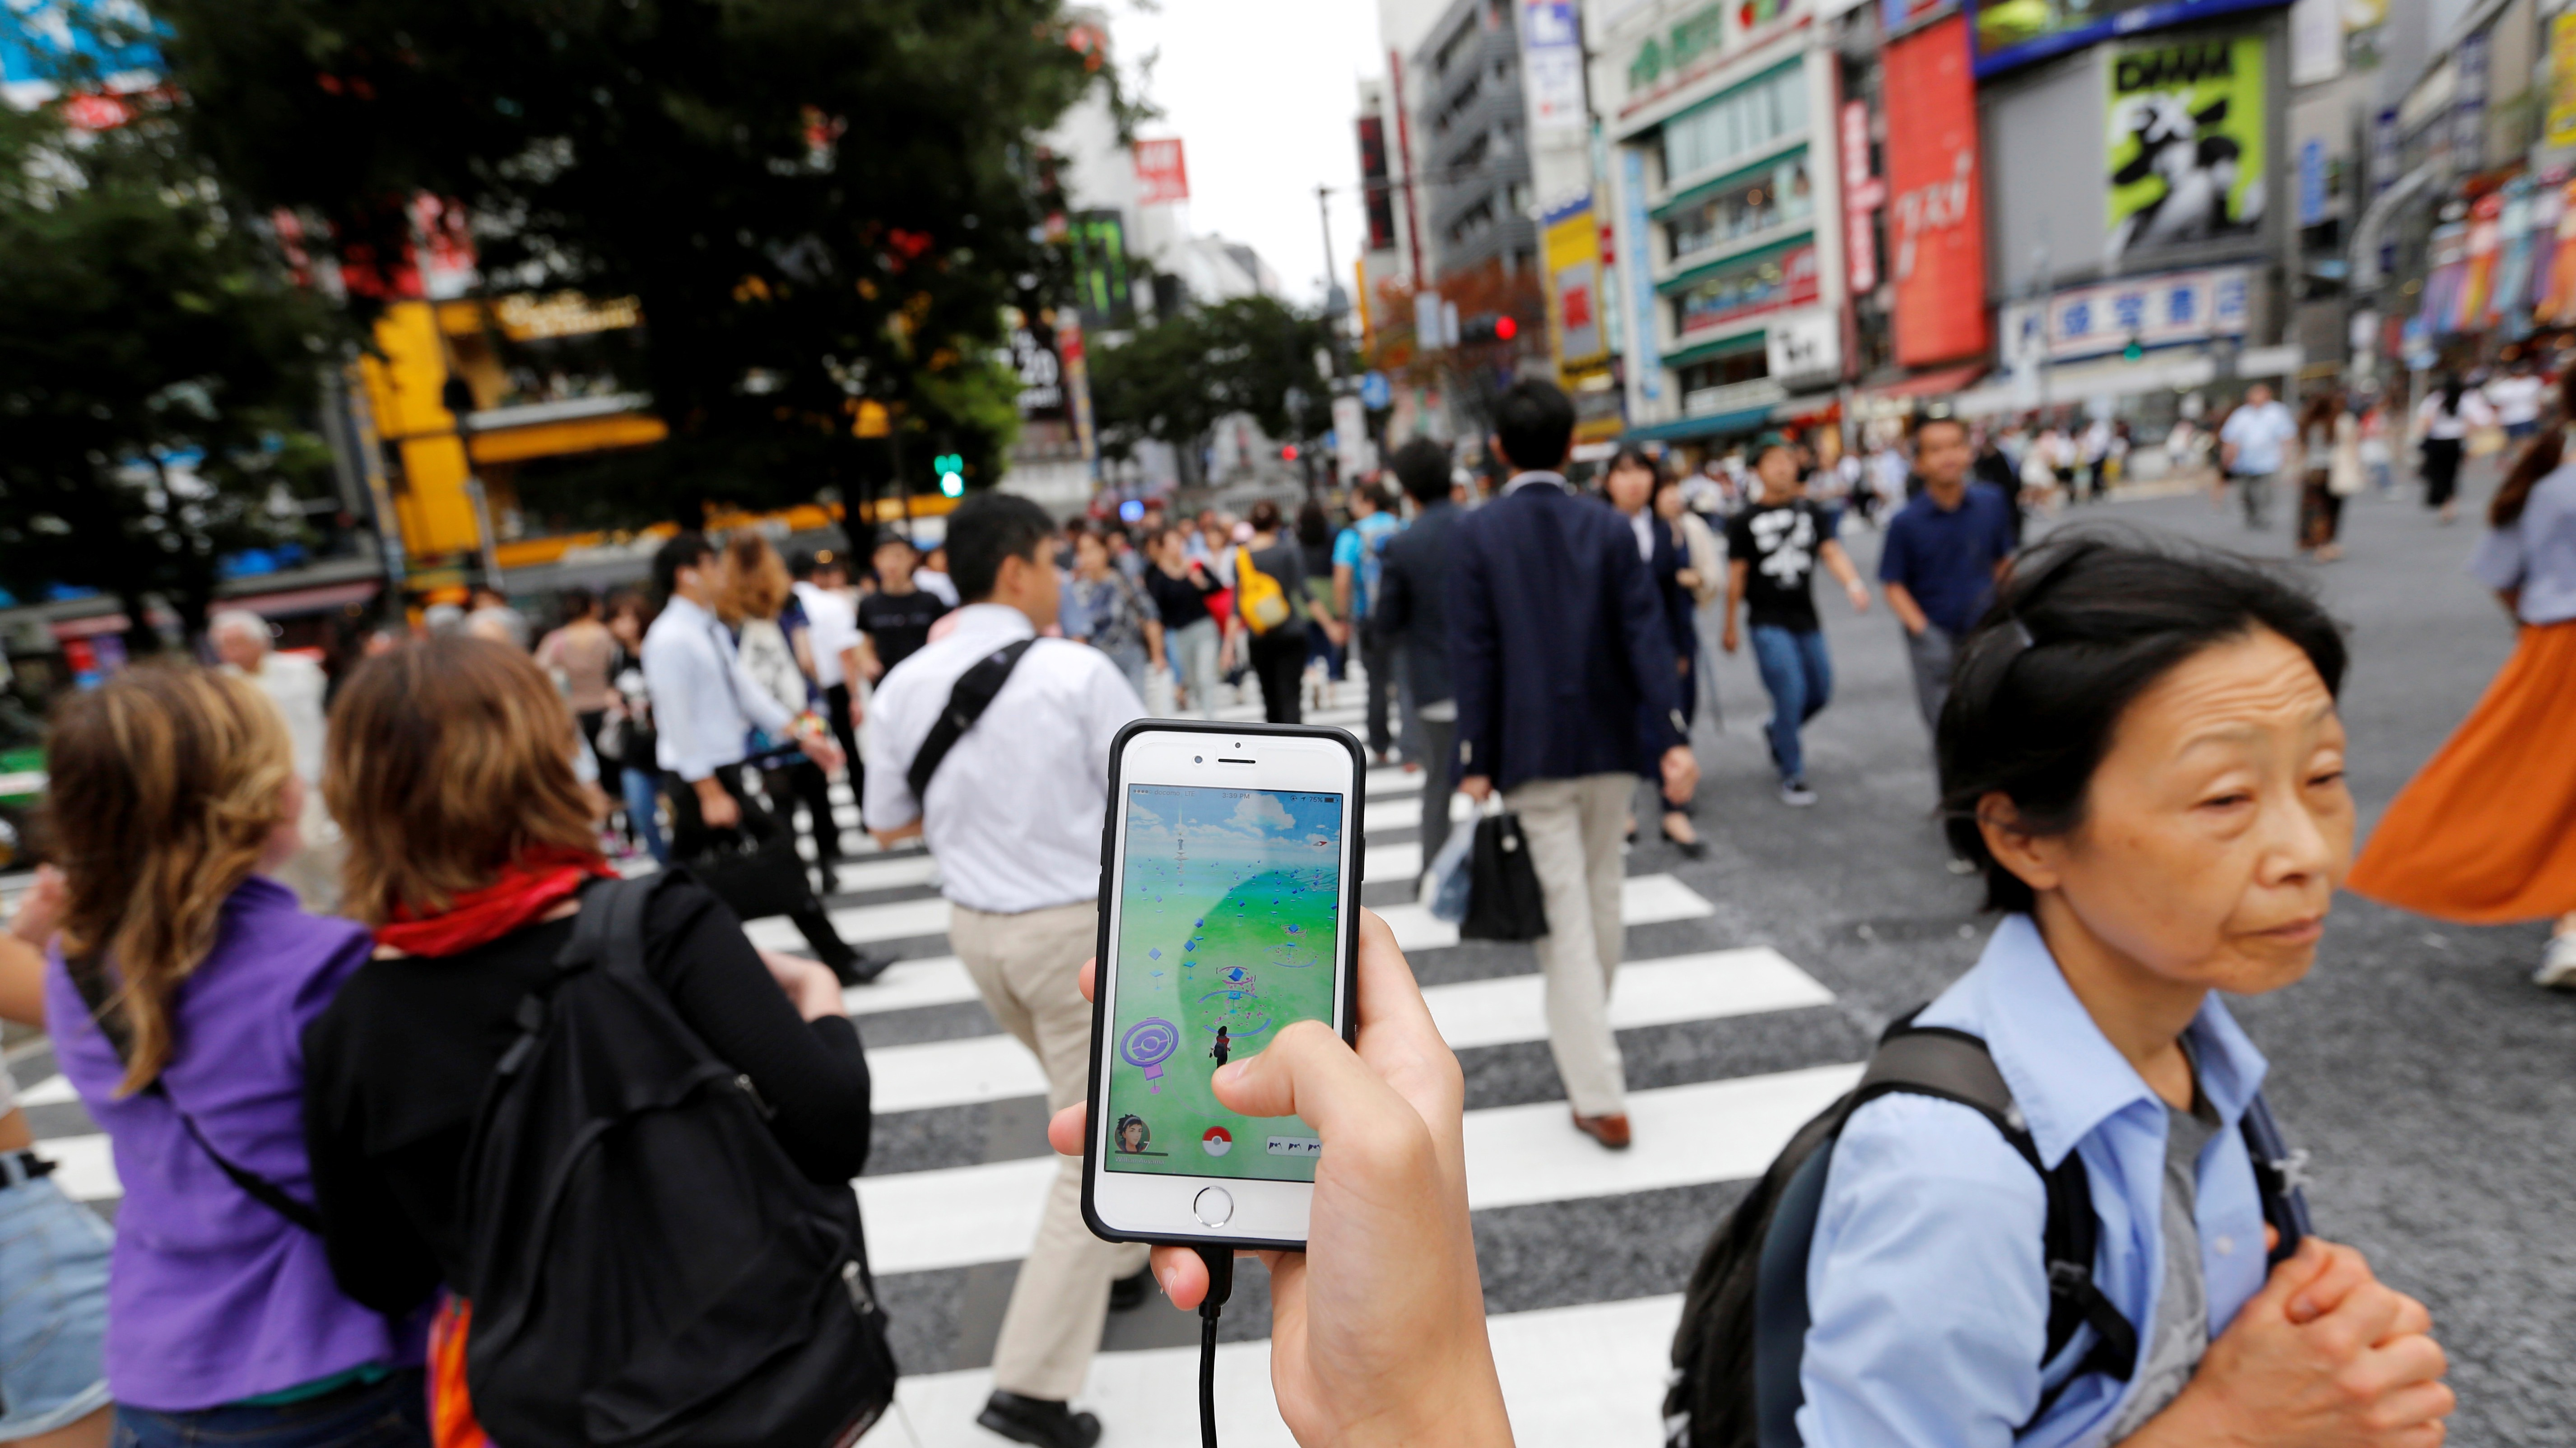 """A man plays the augmented reality mobile game """"Pokemon Go"""" by Nintendo on his mobile phone as he walks at a busy crossing in Shibuya district in Tokyo, Japan, July 22, 2016. REUTERS/Toru Hanai - RTSJ5OU"""